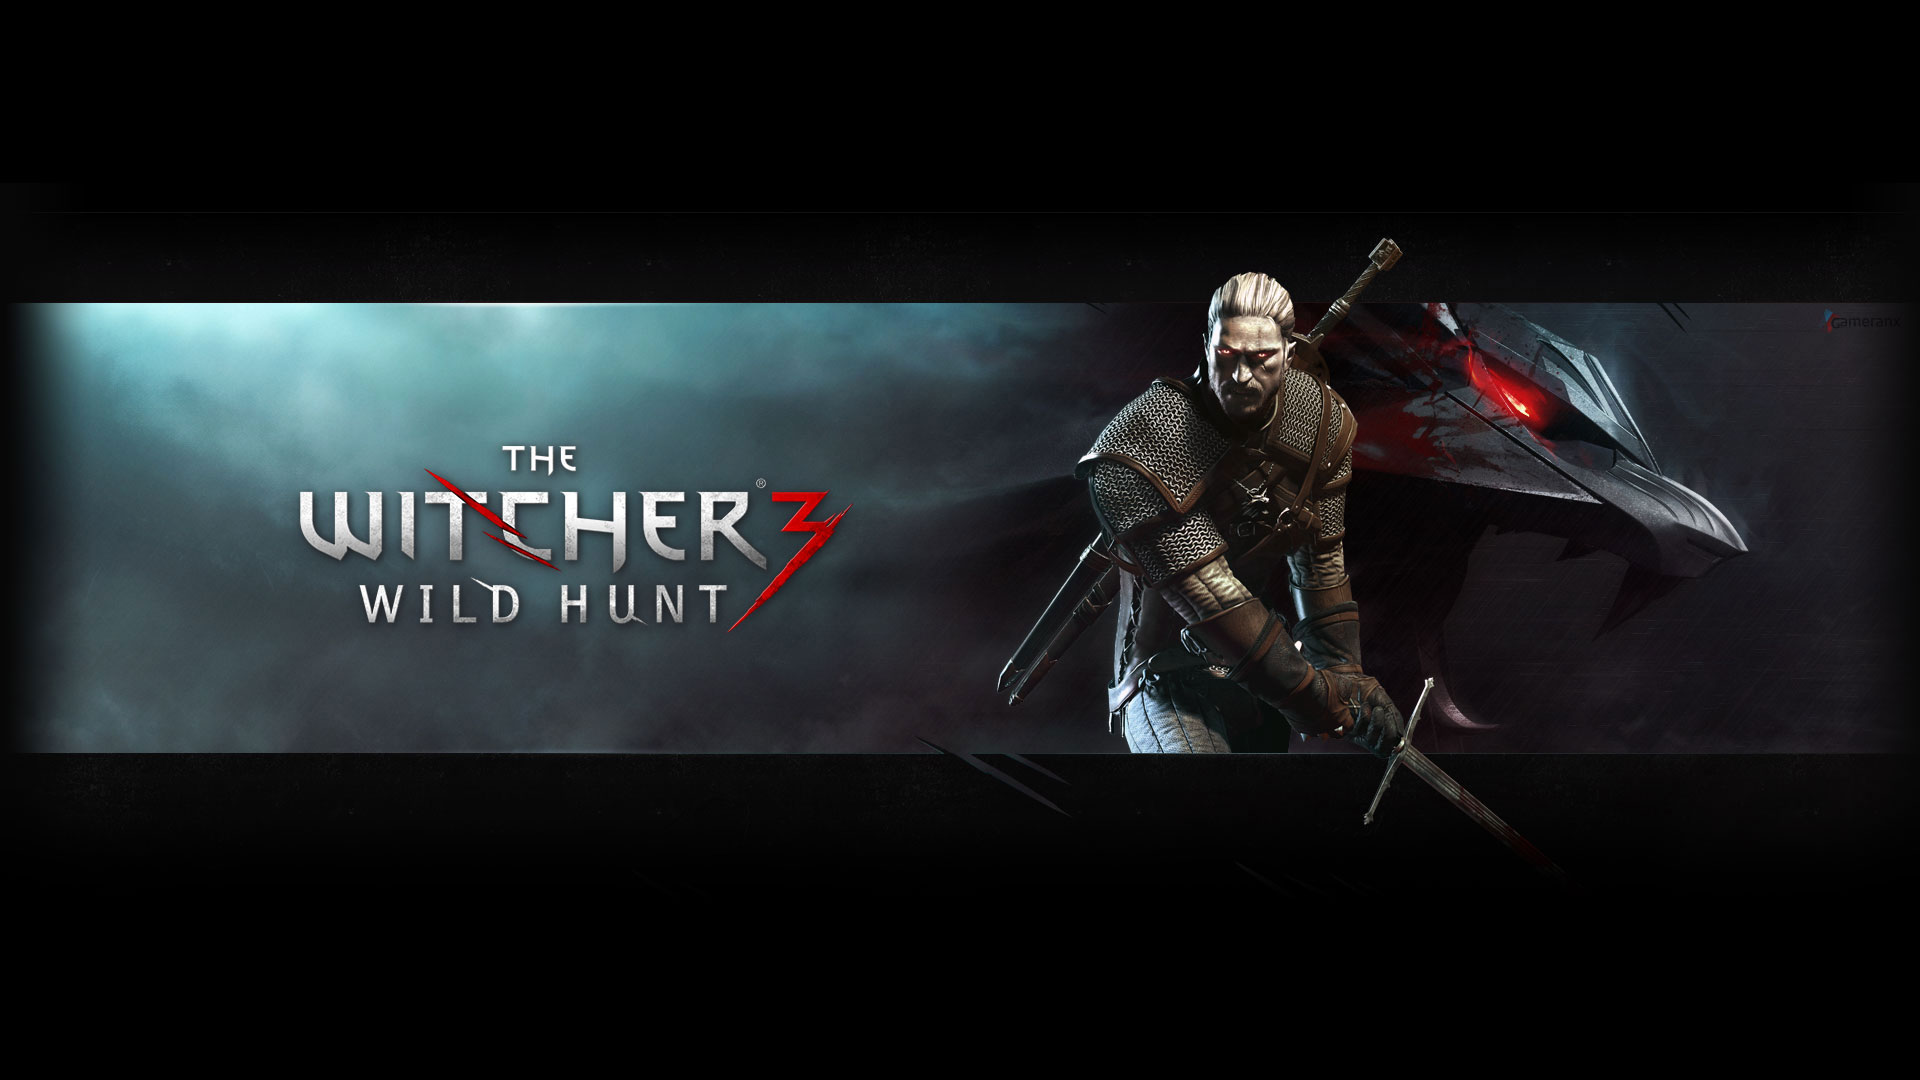 48 The Witcher 3 1080p Wallpaper On Wallpapersafari